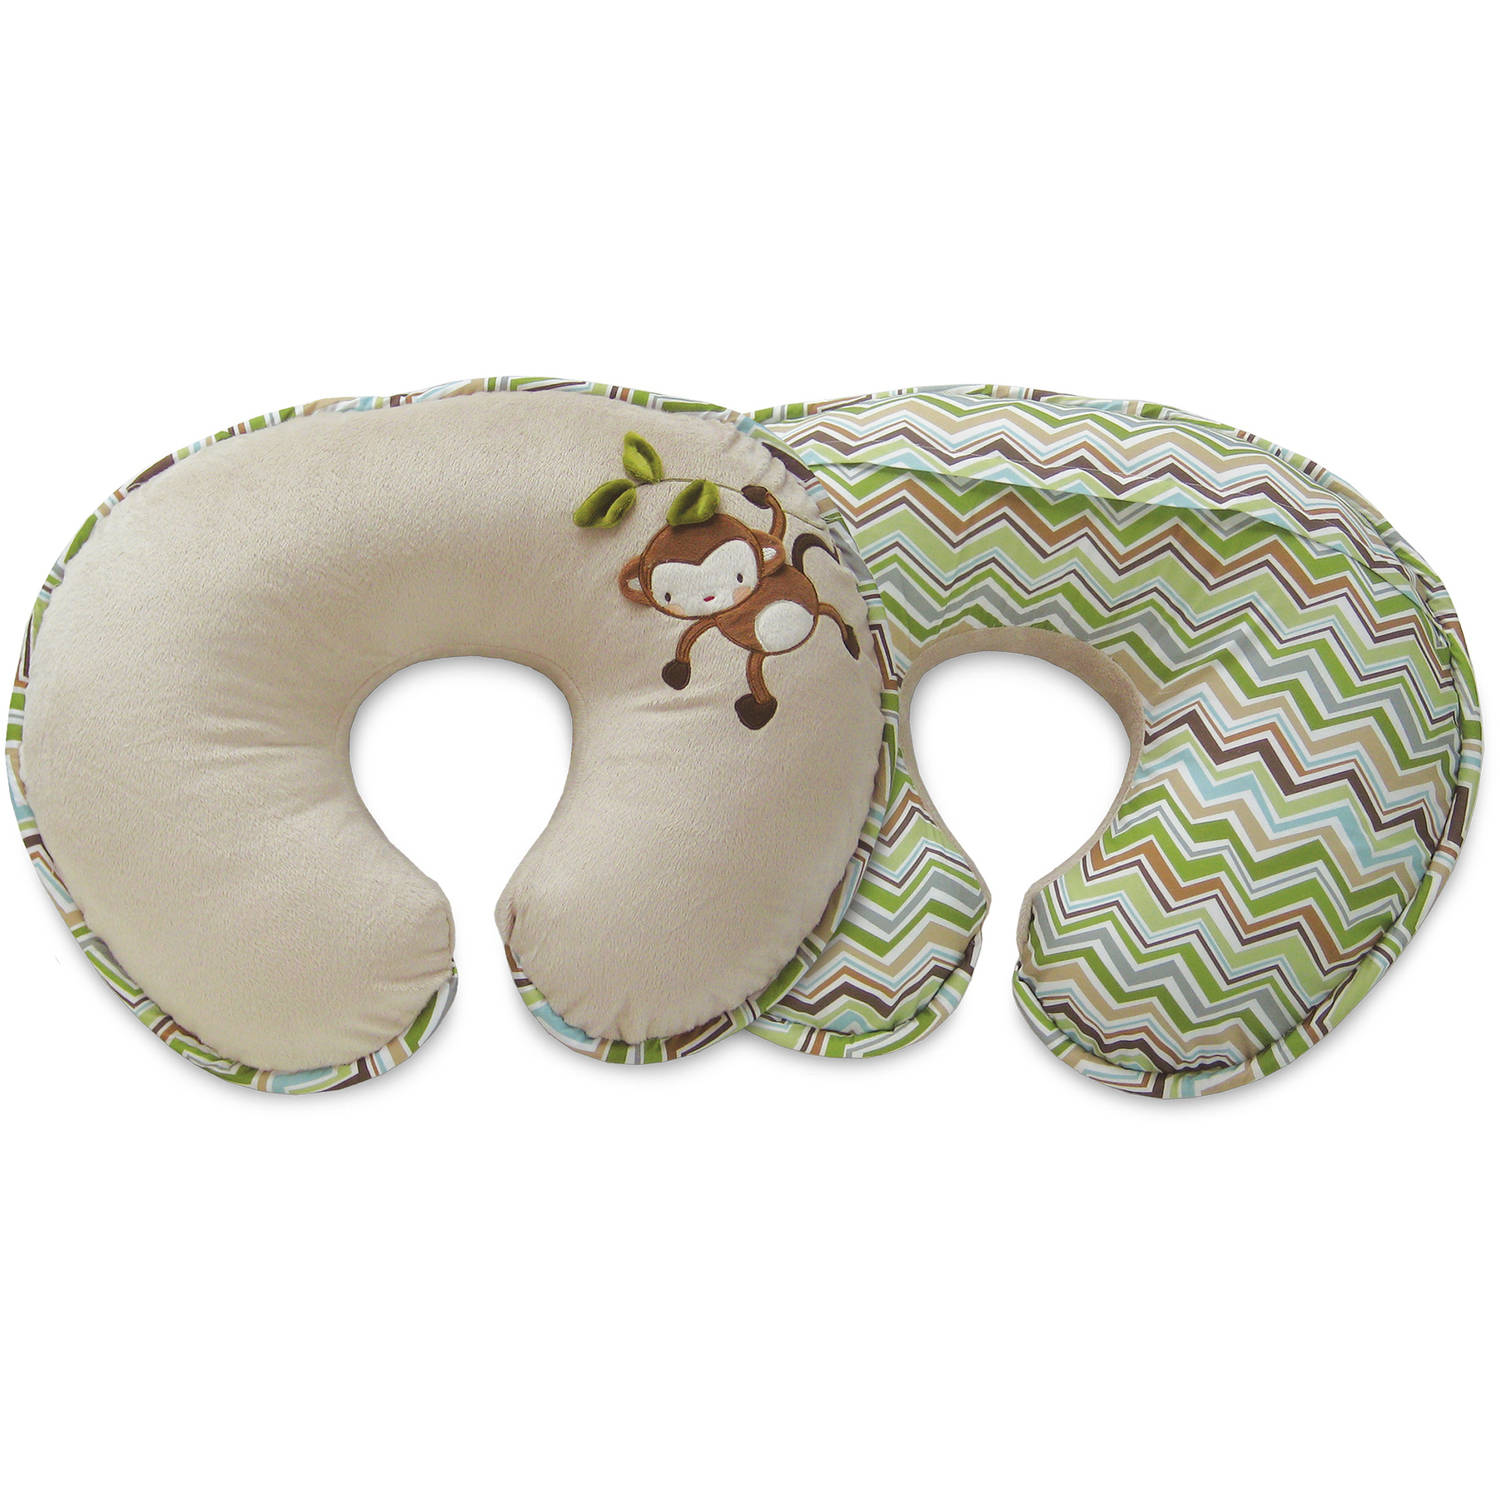 Original Boppy Nursing Pillow and Positioner - Luxe Monkey Chevron